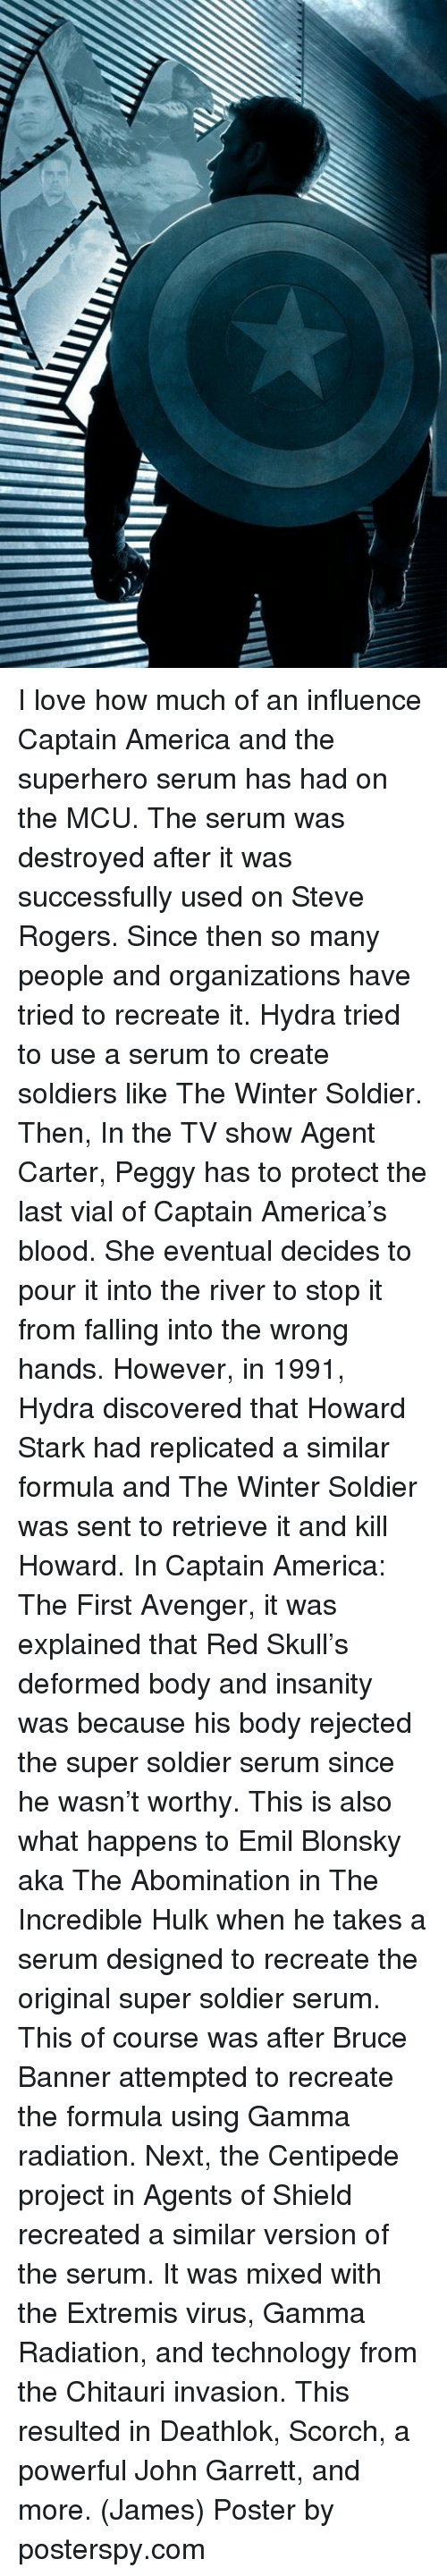 usings: I love how much of an influence Captain America and the superhero serum has had on the MCU. The serum was destroyed after it was successfully used on Steve Rogers. Since then so many people and organizations have tried to recreate it.  Hydra tried to use a serum to create soldiers like The Winter Soldier. Then, In the TV show Agent Carter, Peggy has to protect the last vial of Captain America's blood. She eventual decides to pour it into the river to stop it from falling into the wrong hands. However, in 1991, Hydra discovered that Howard Stark had replicated a similar formula and The Winter Soldier was sent to retrieve it and kill Howard.   In Captain America: The First Avenger, it was explained that Red Skull's deformed body and insanity was because his body rejected the super soldier serum since he wasn't worthy. This is also what happens to Emil Blonsky aka The Abomination in The Incredible Hulk when he takes a serum designed to recreate the original super soldier serum. This of course was after Bruce Banner attempted to recreate the formula using Gamma radiation.   Next, the Centipede project in Agents of Shield recreated a similar version of the serum. It was mixed with the Extremis virus, Gamma Radiation, and technology from the Chitauri invasion. This resulted in Deathlok, Scorch, a powerful John Garrett, and more.  (James)  Poster by posterspy.com